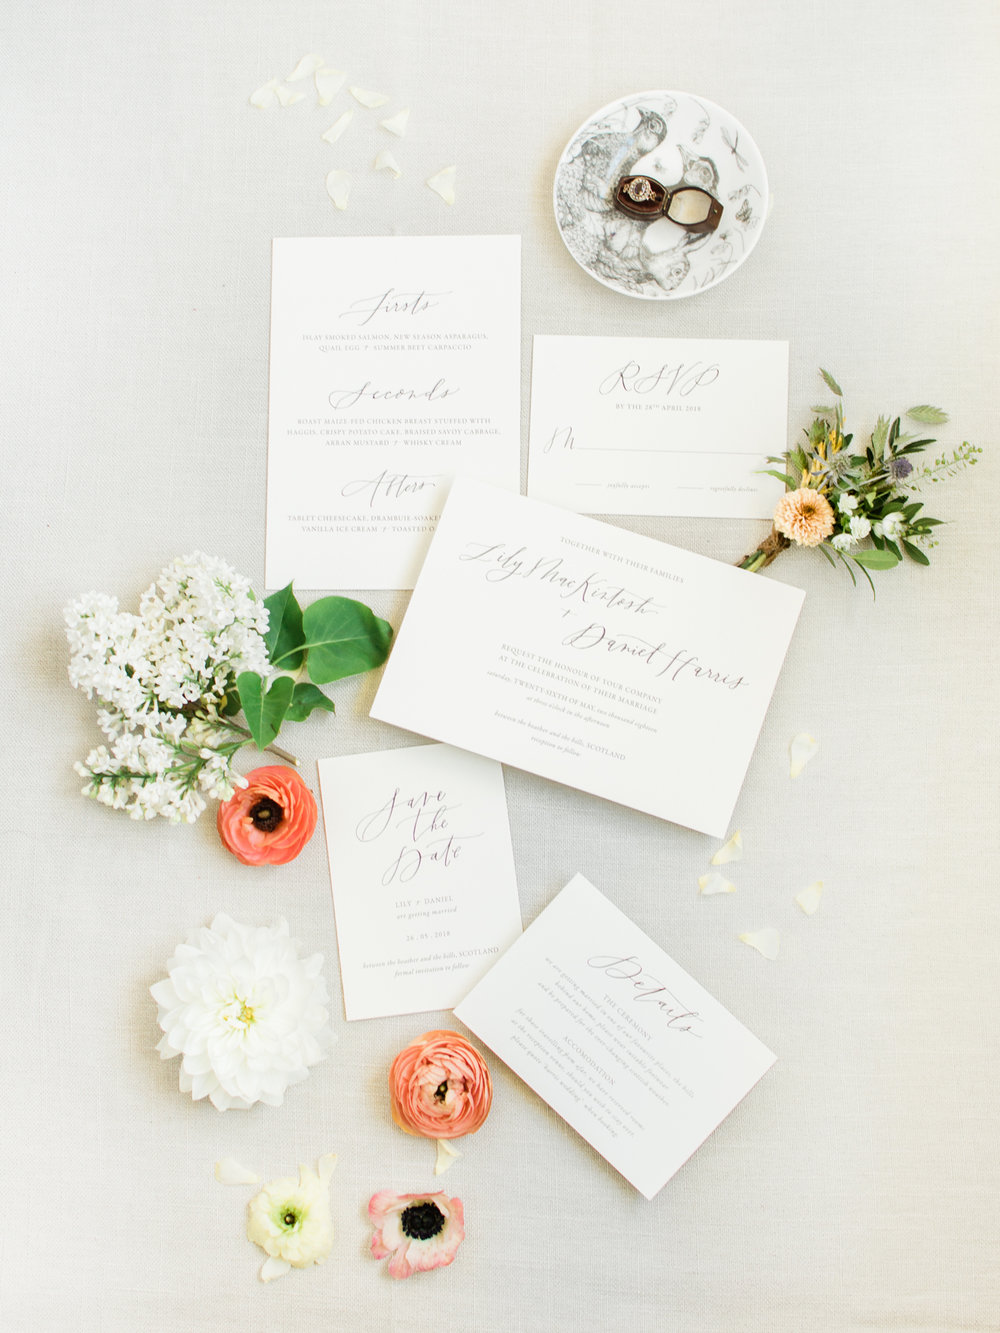 JacquelineAnne Photography-Calligraphy-11.jpg